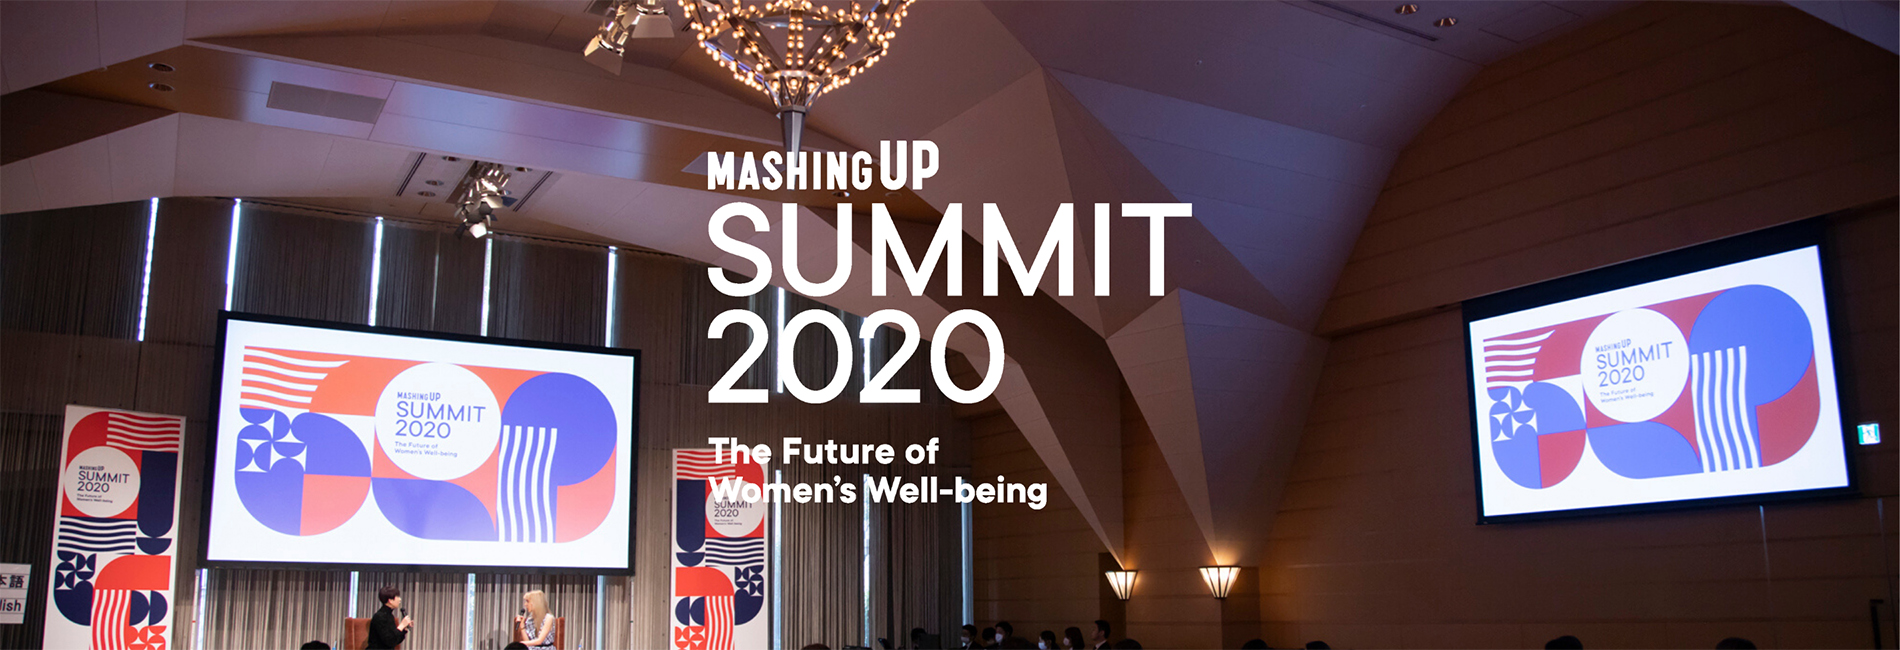 MASHING UP SUMMIT 2020